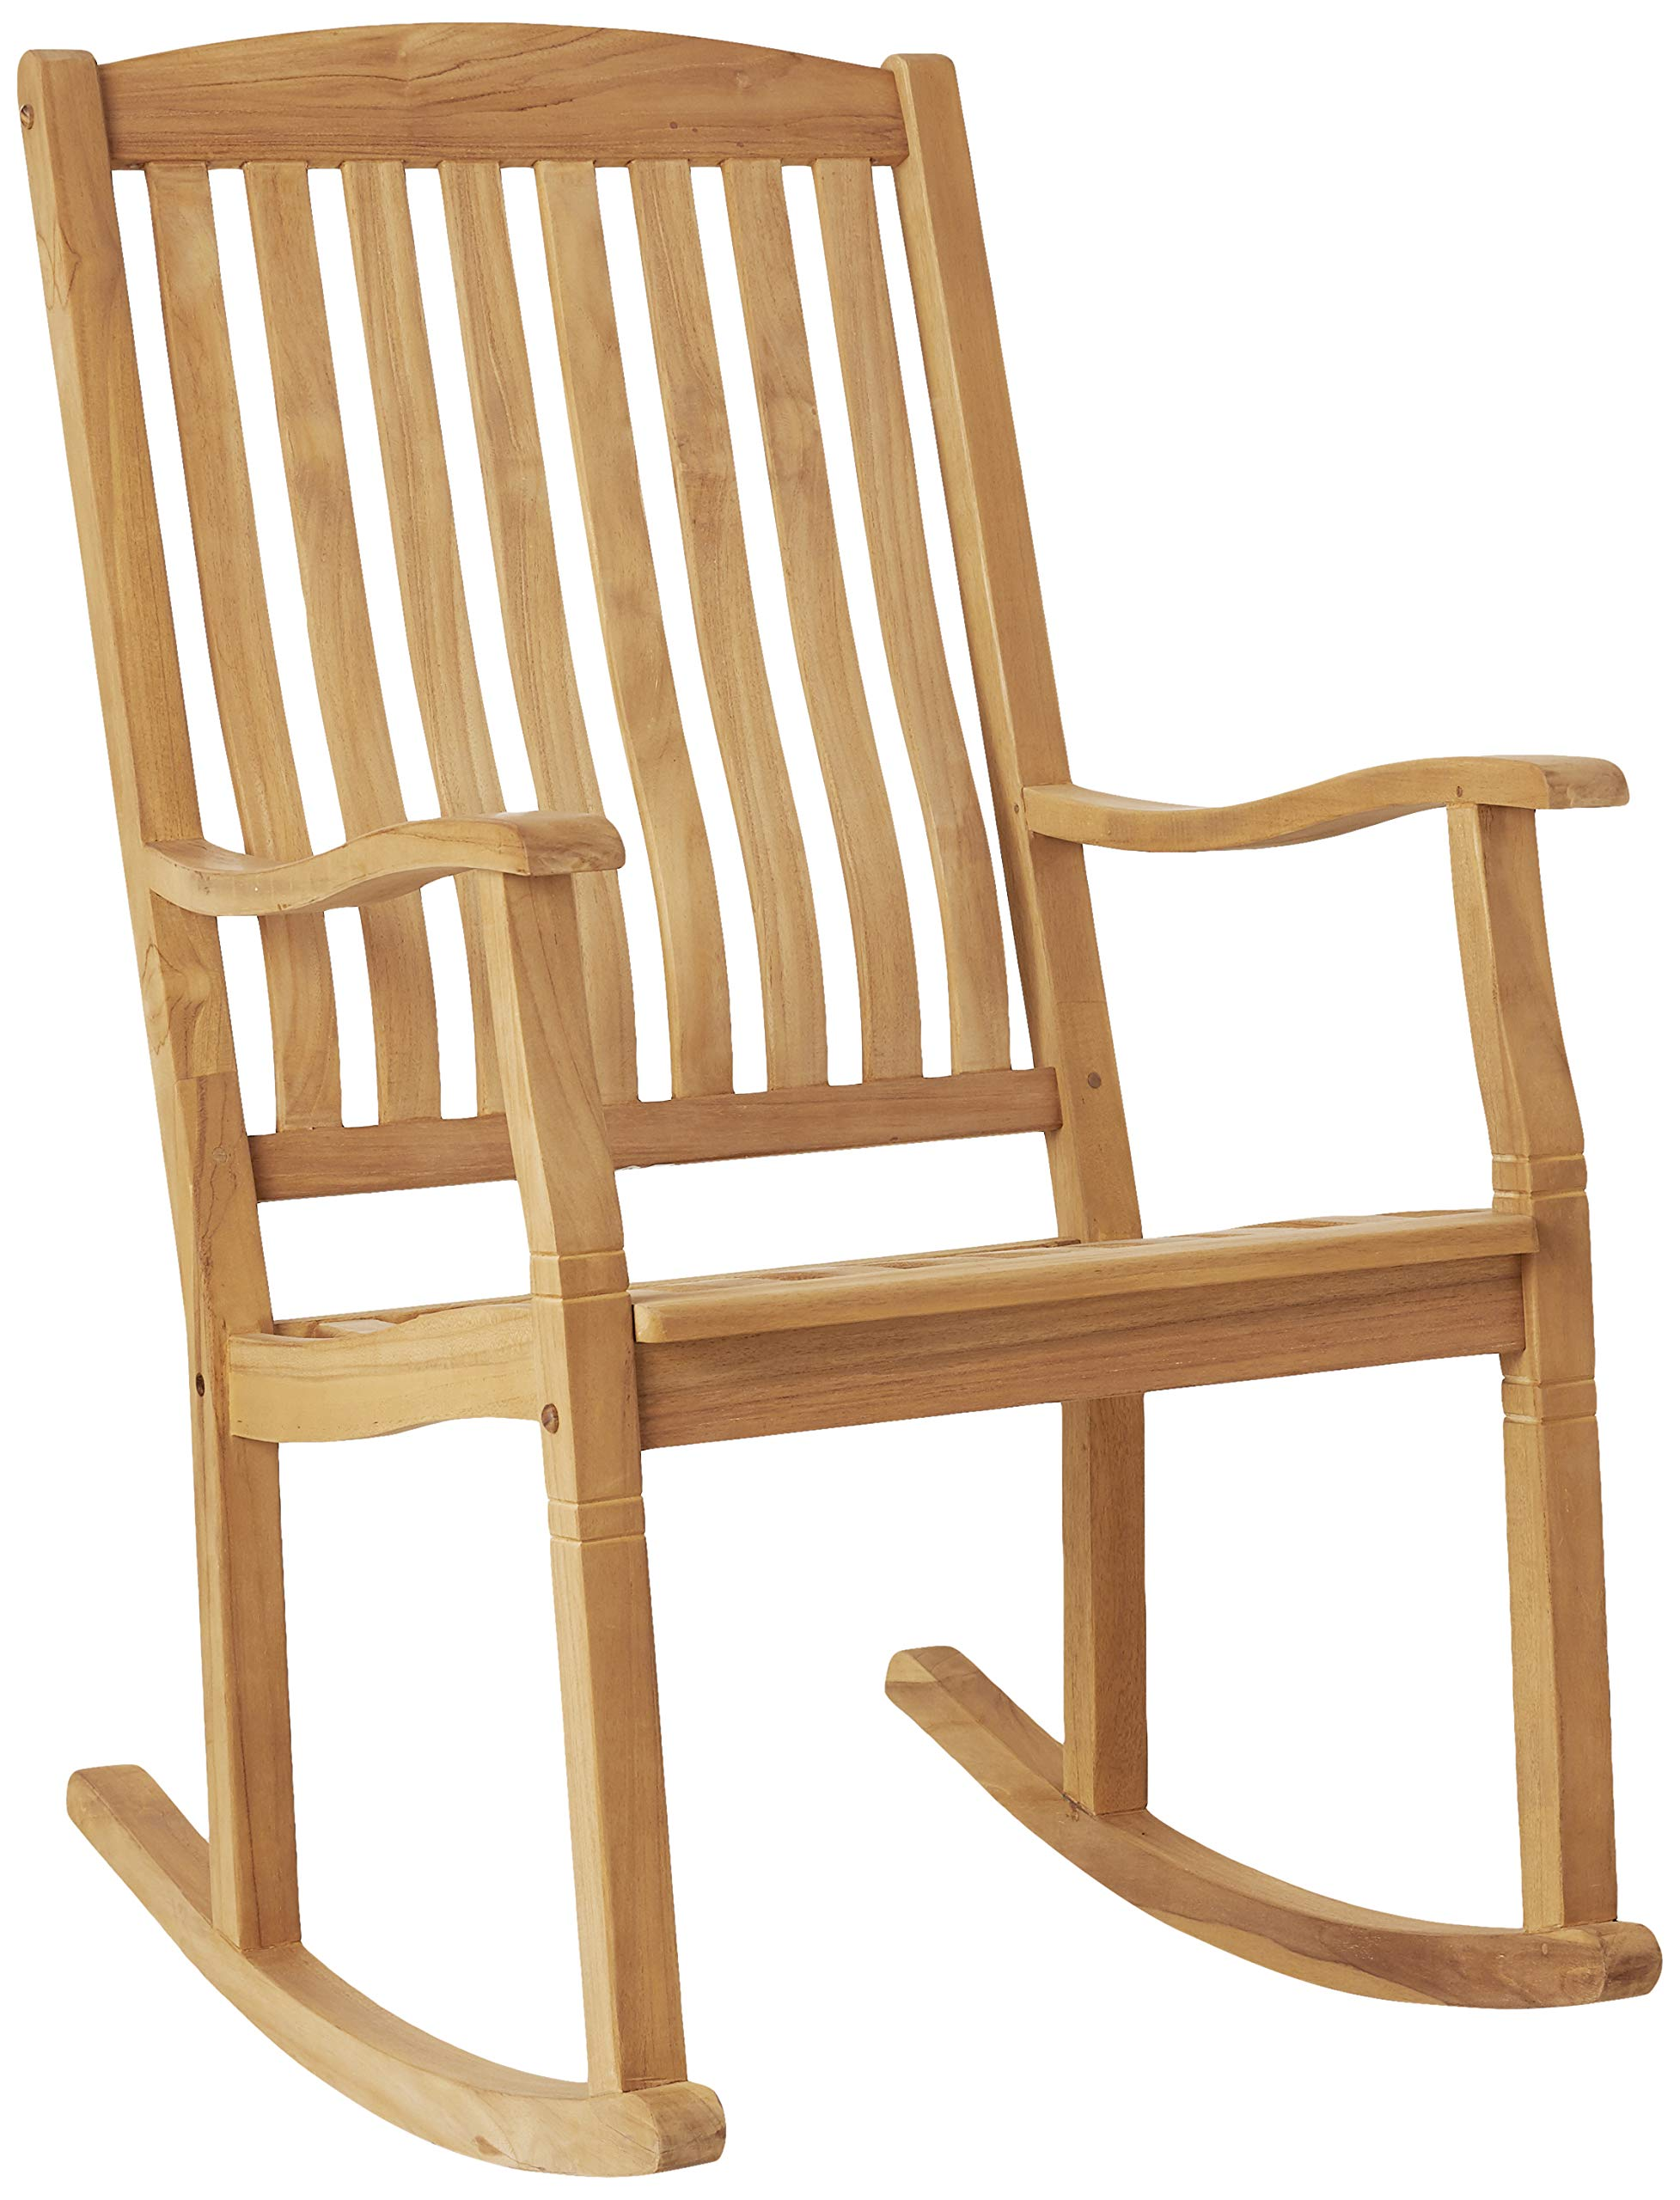 Cambridge-Casual AMZ-130574T Arie Teak Rocking Chair, Natural by Cambridge-Casual